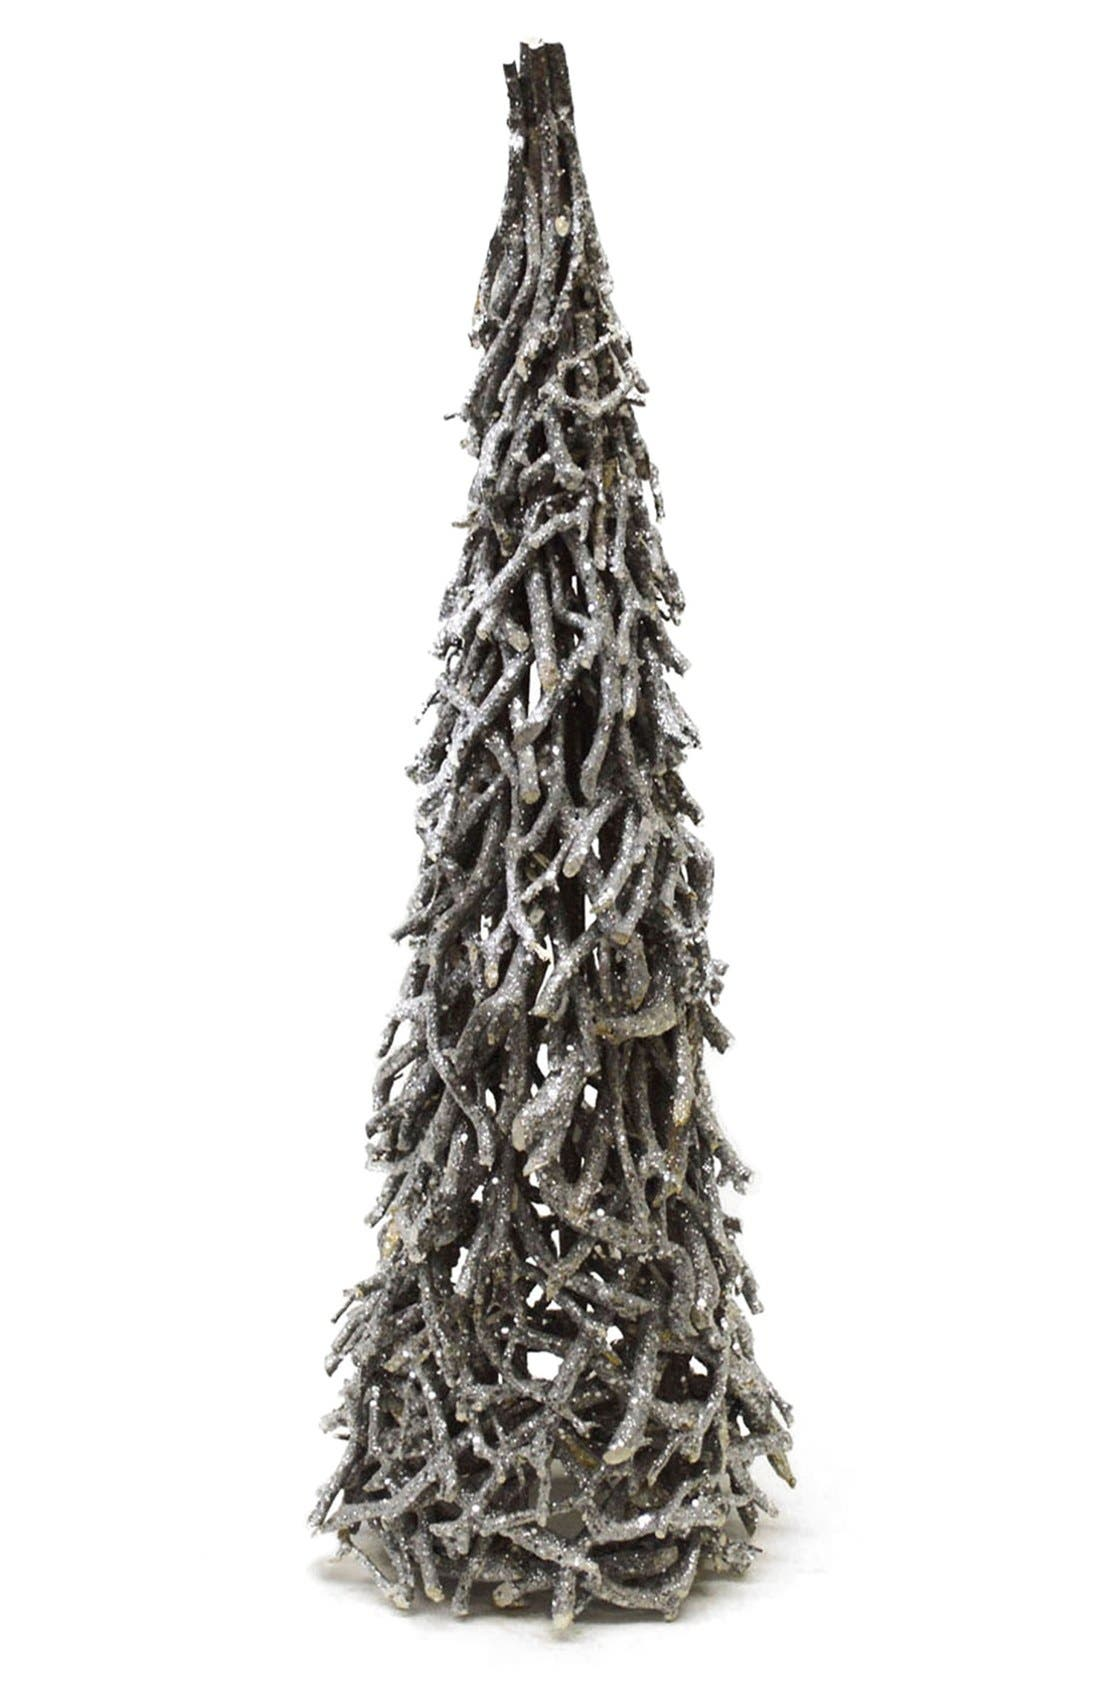 Alternate Image 1 Selected - Shea's Wildflower Glitter Cone Tree